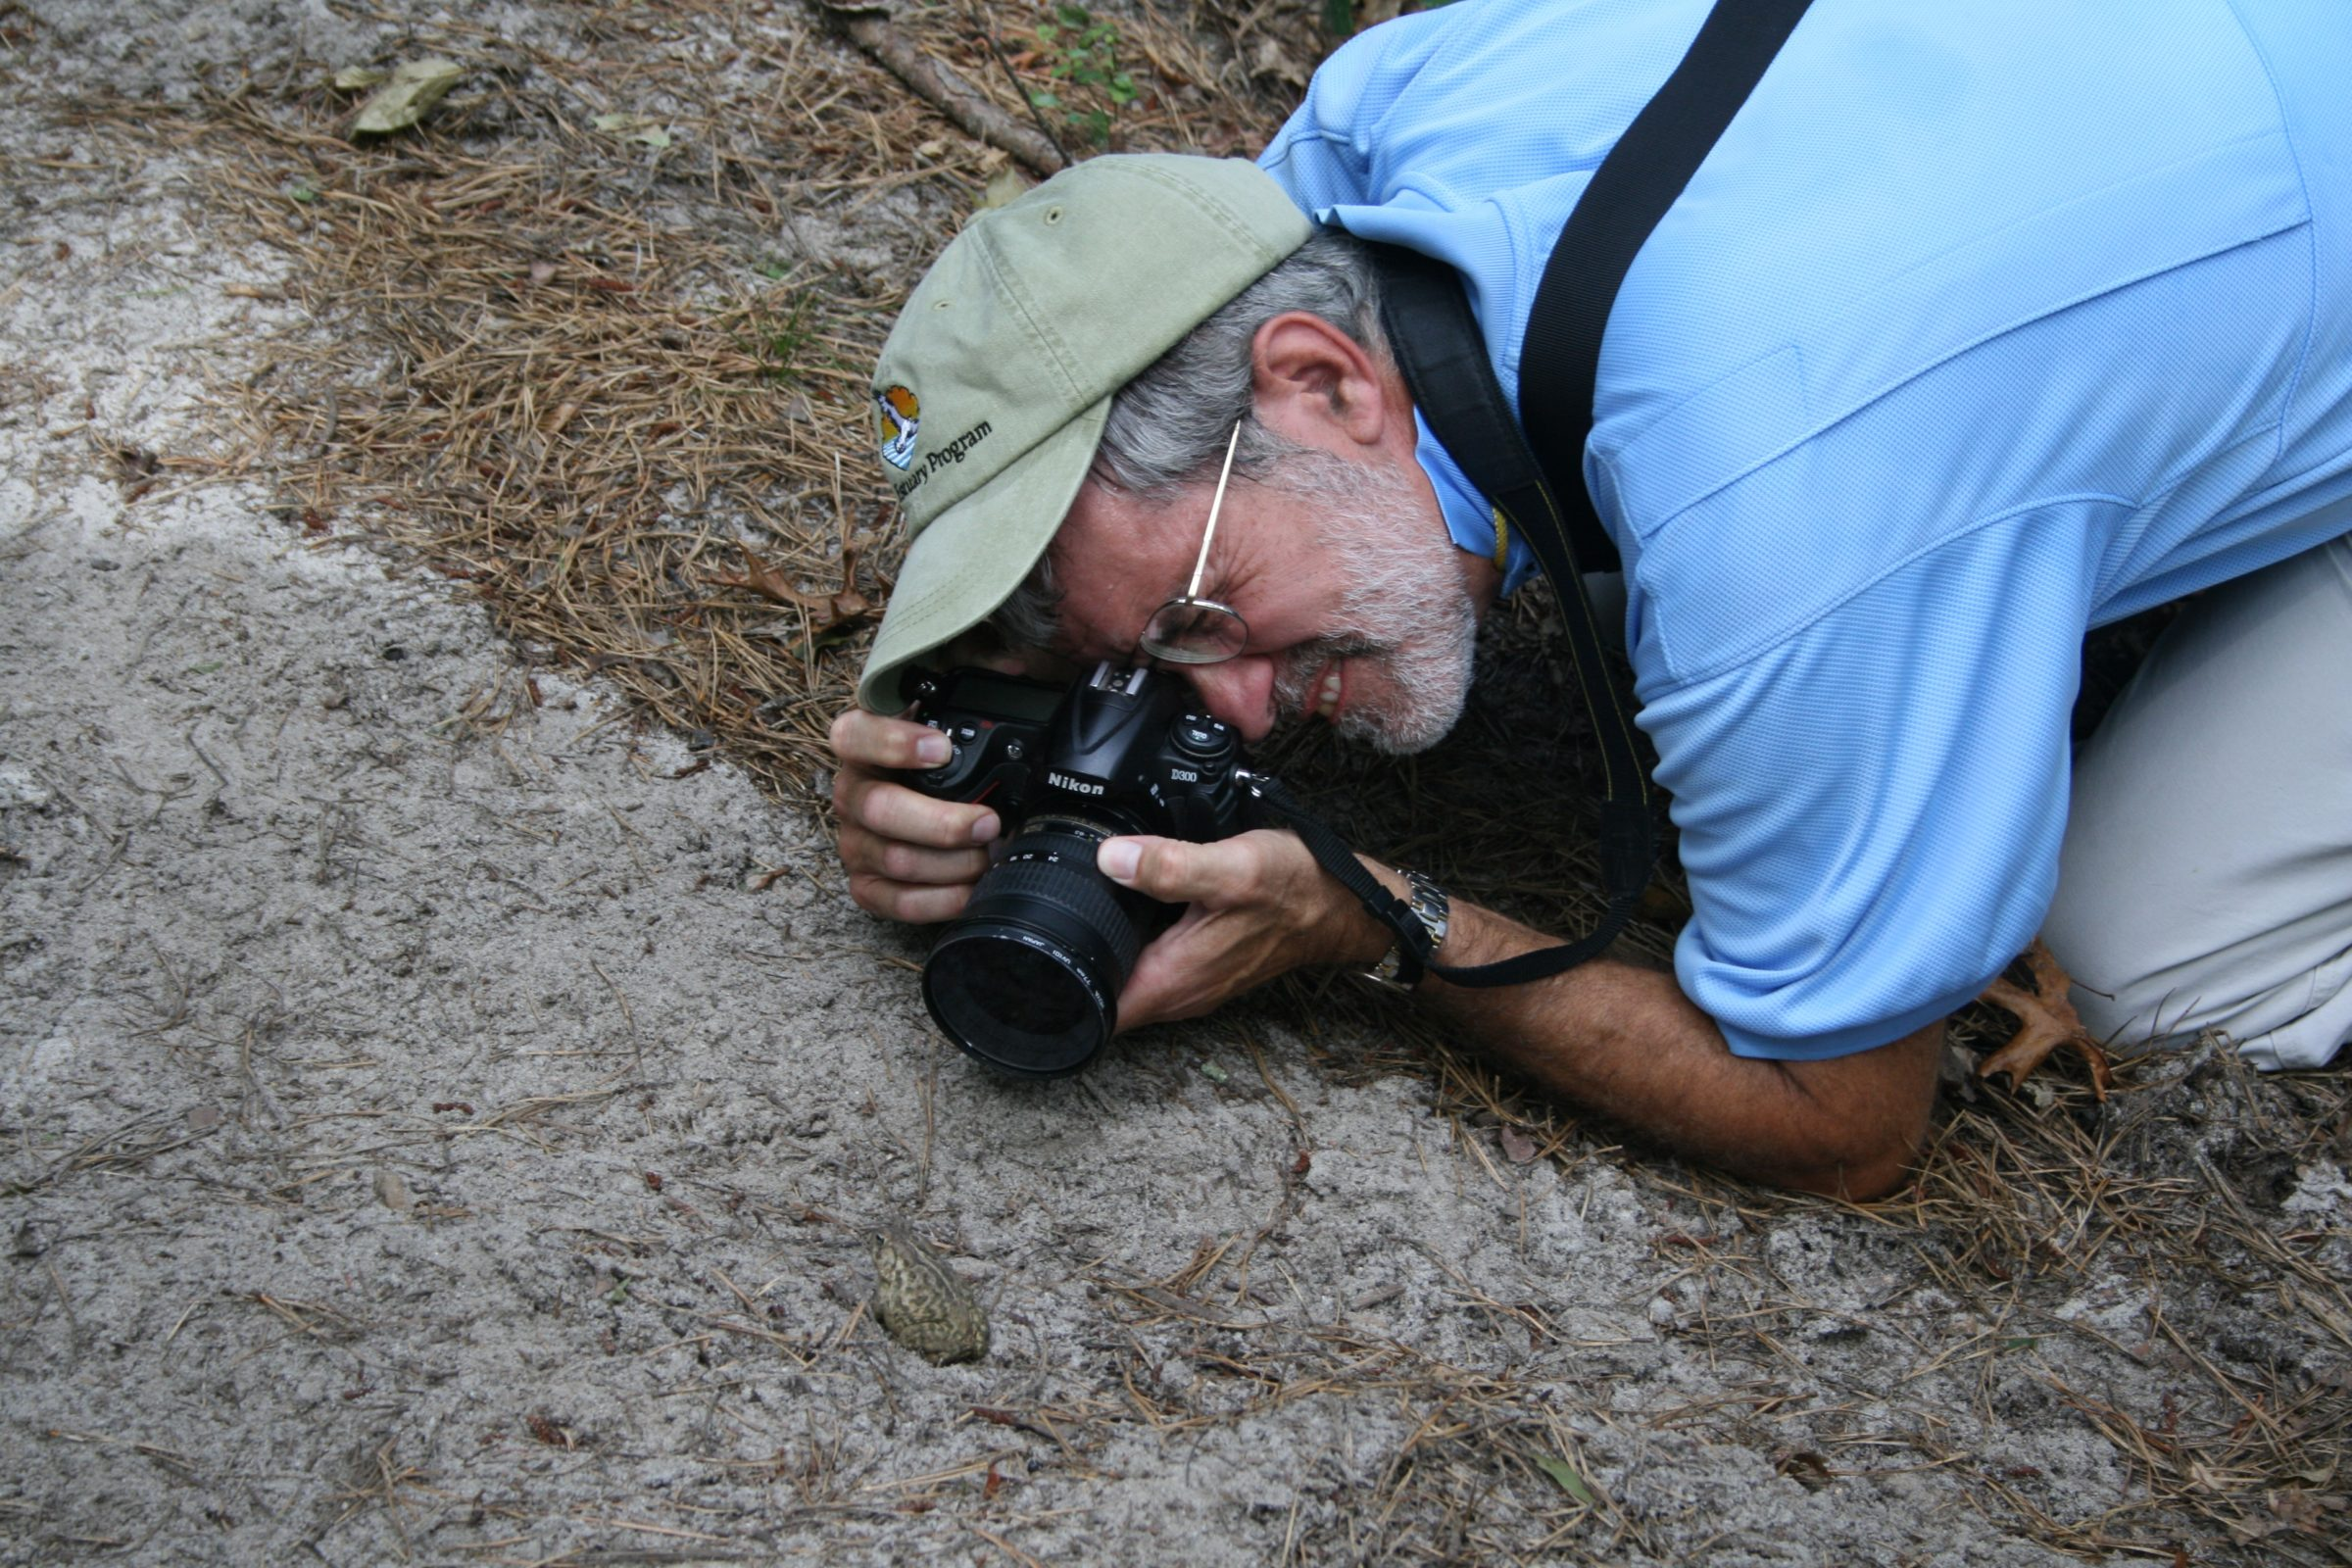 Man on the ground photographing a toad